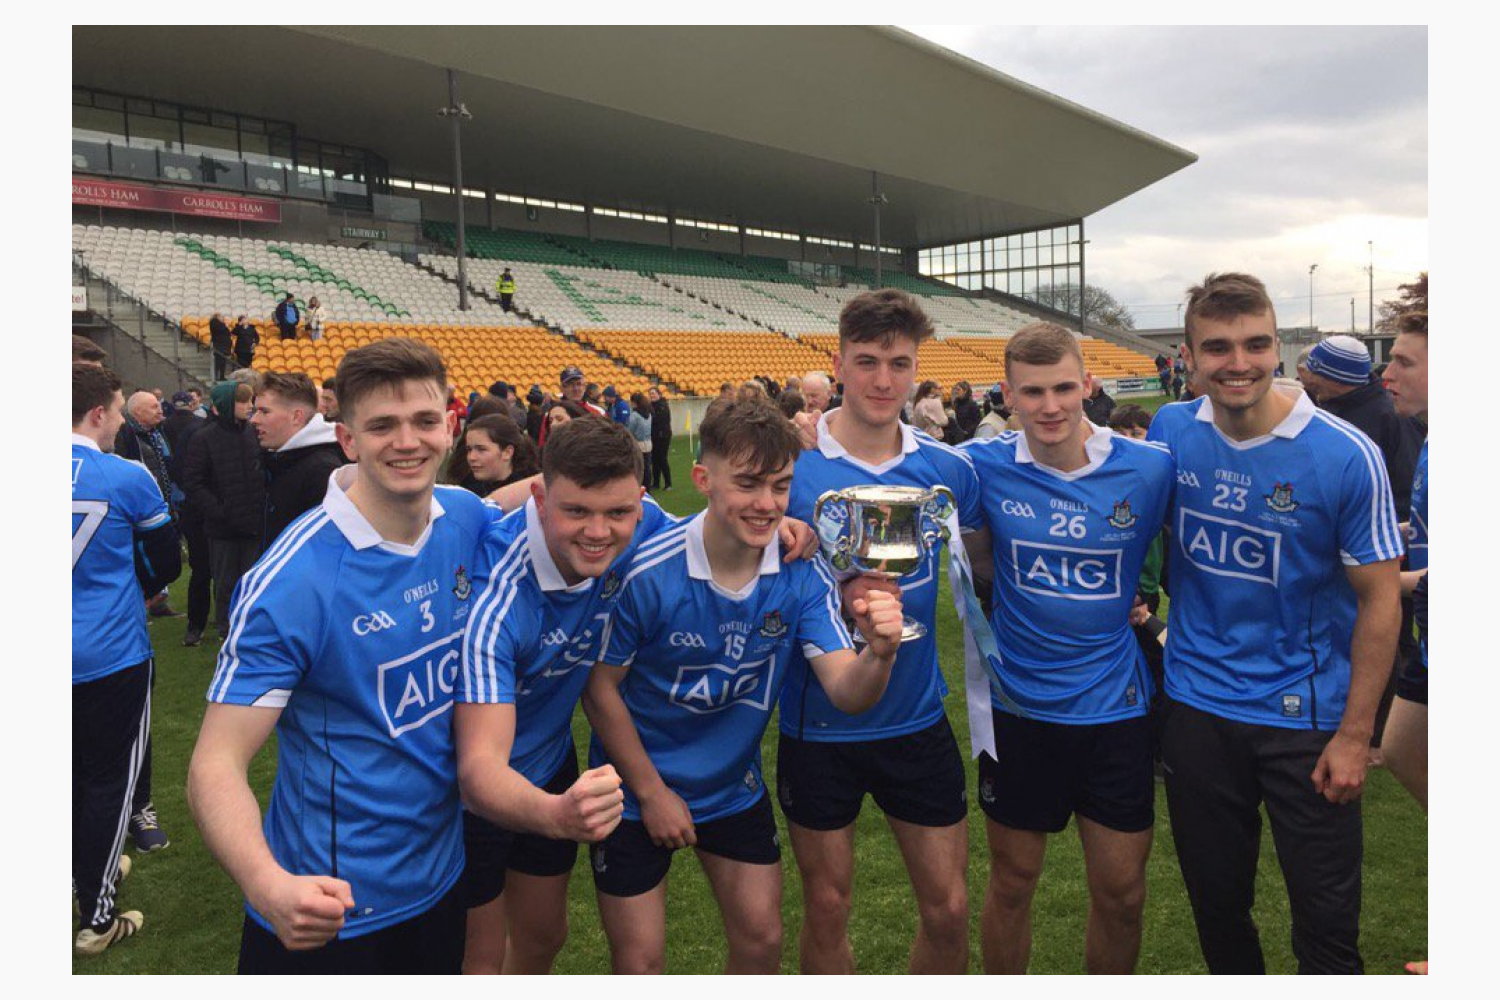 Congratulations to the Dublin U 21 Team - 6 Kilmacud Crokes